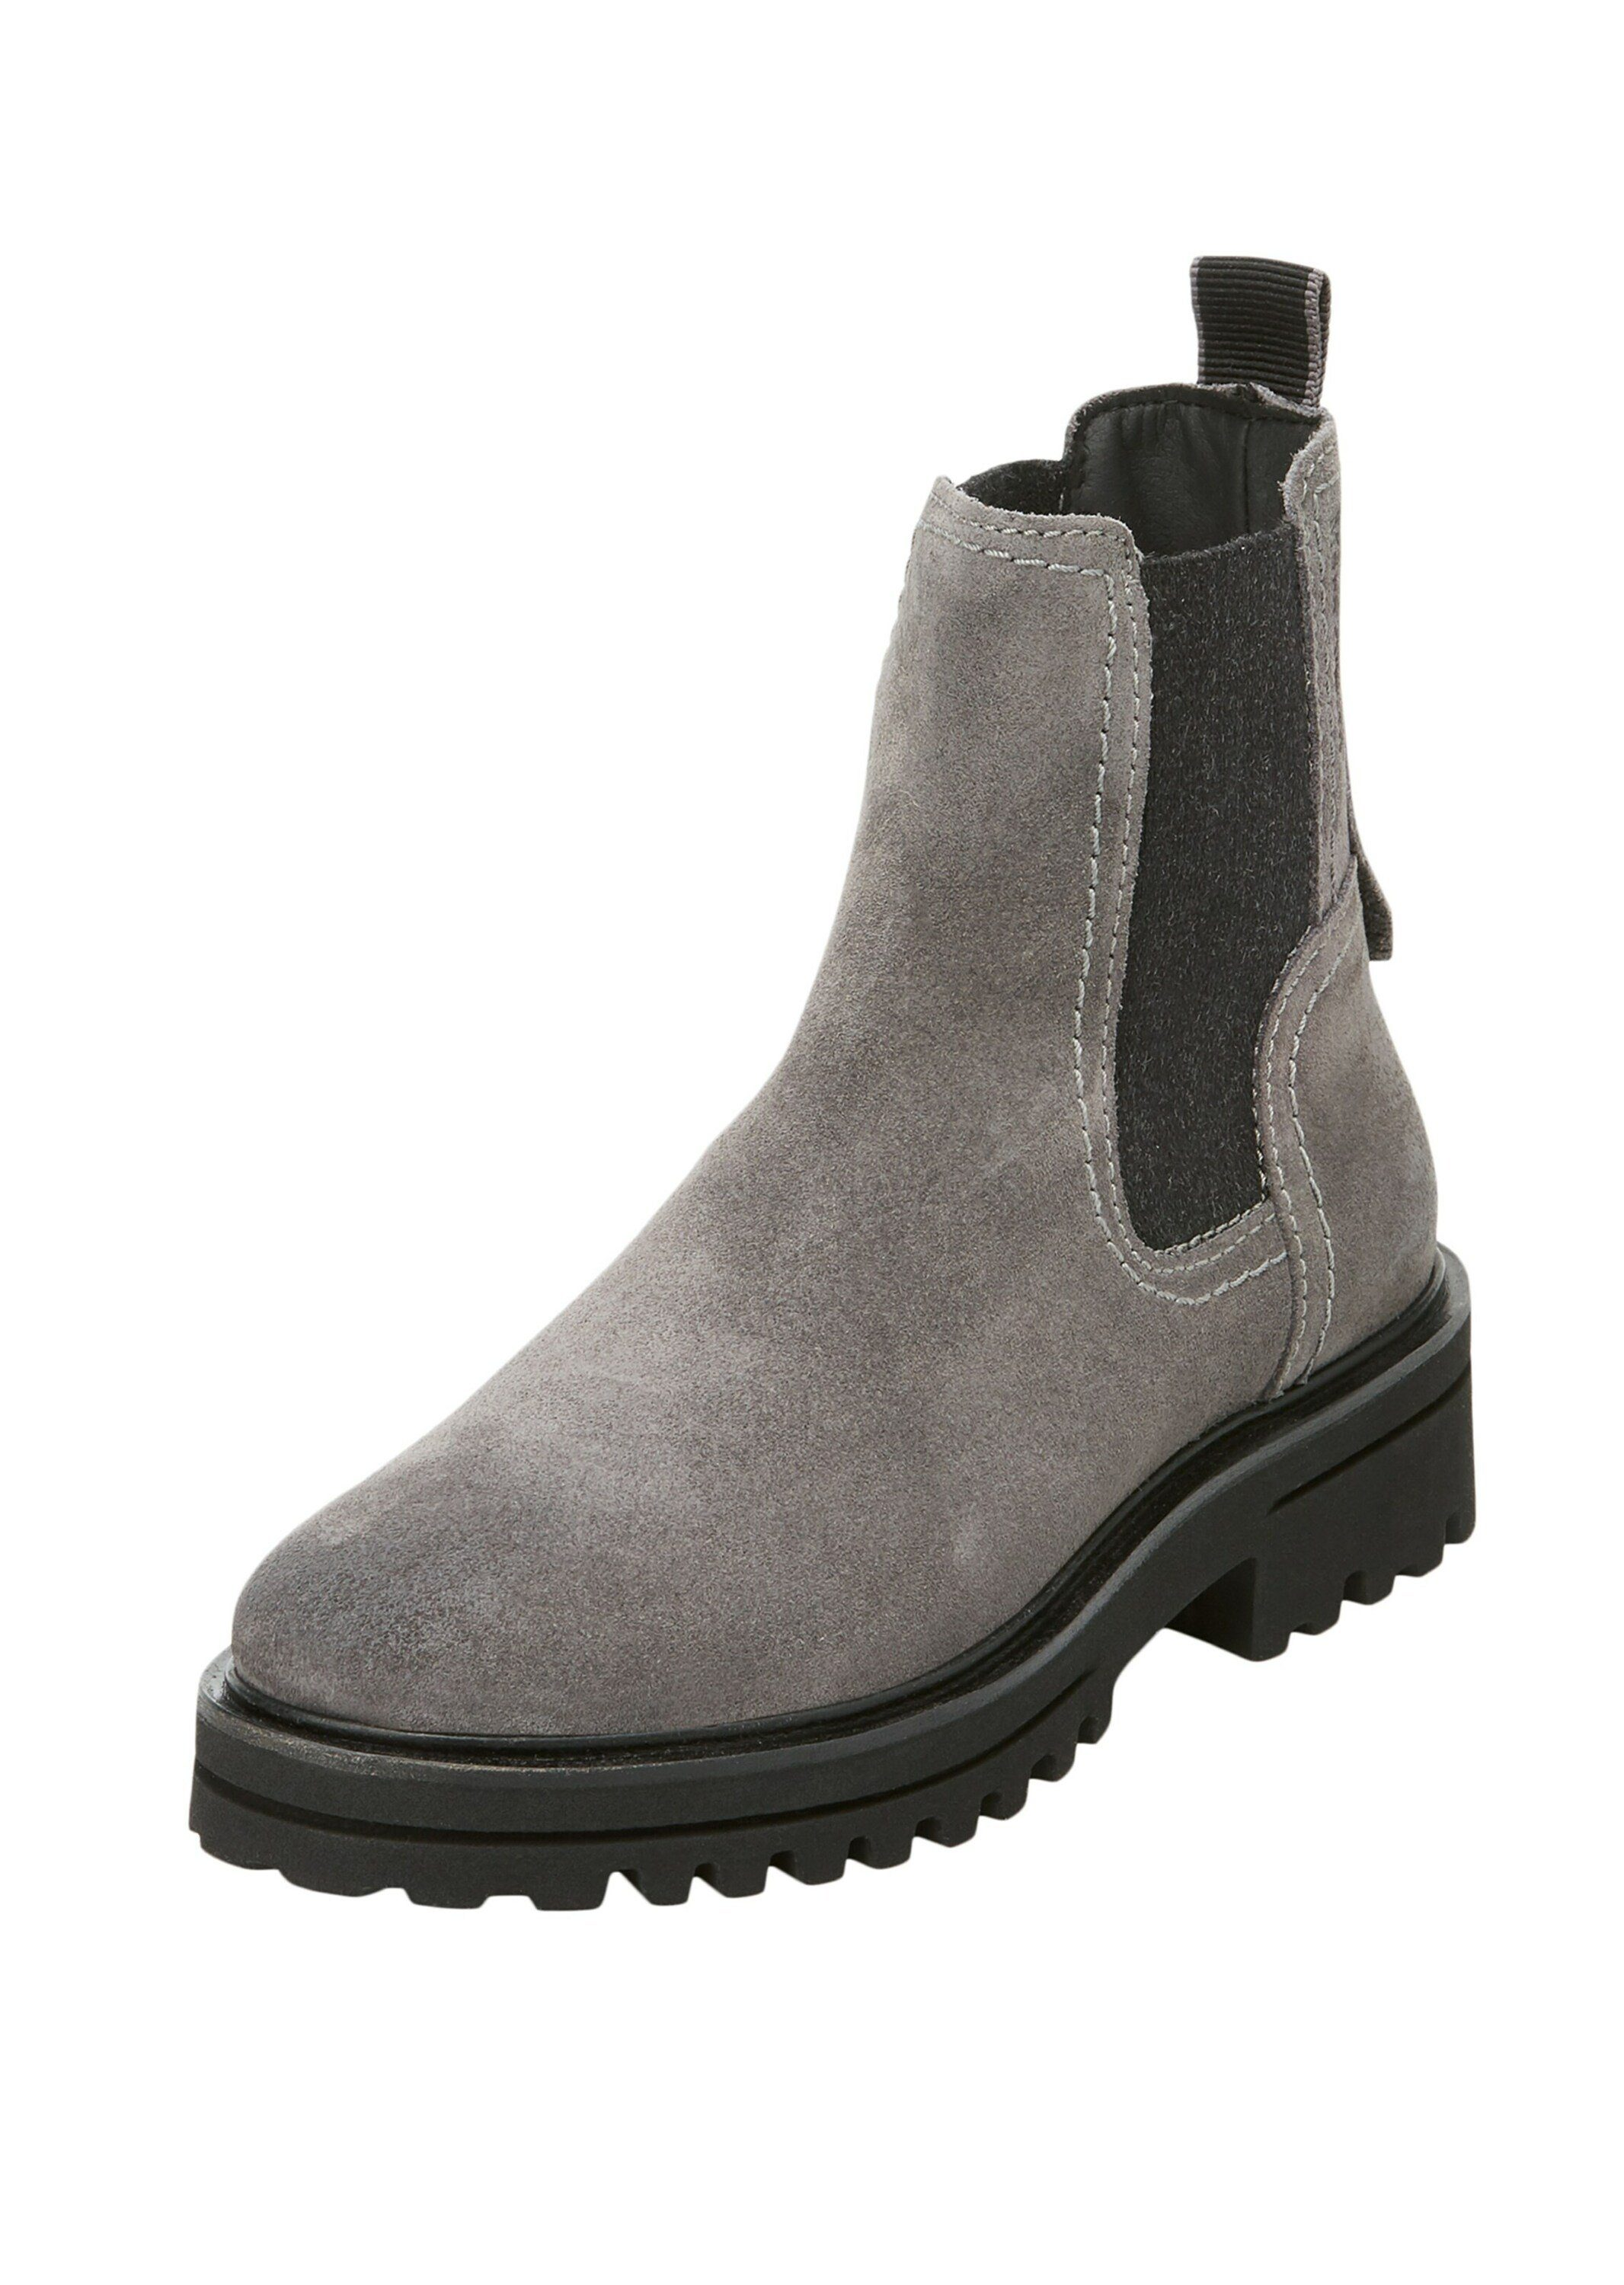 Marc O'polo Chelseaboots Online Kaufen